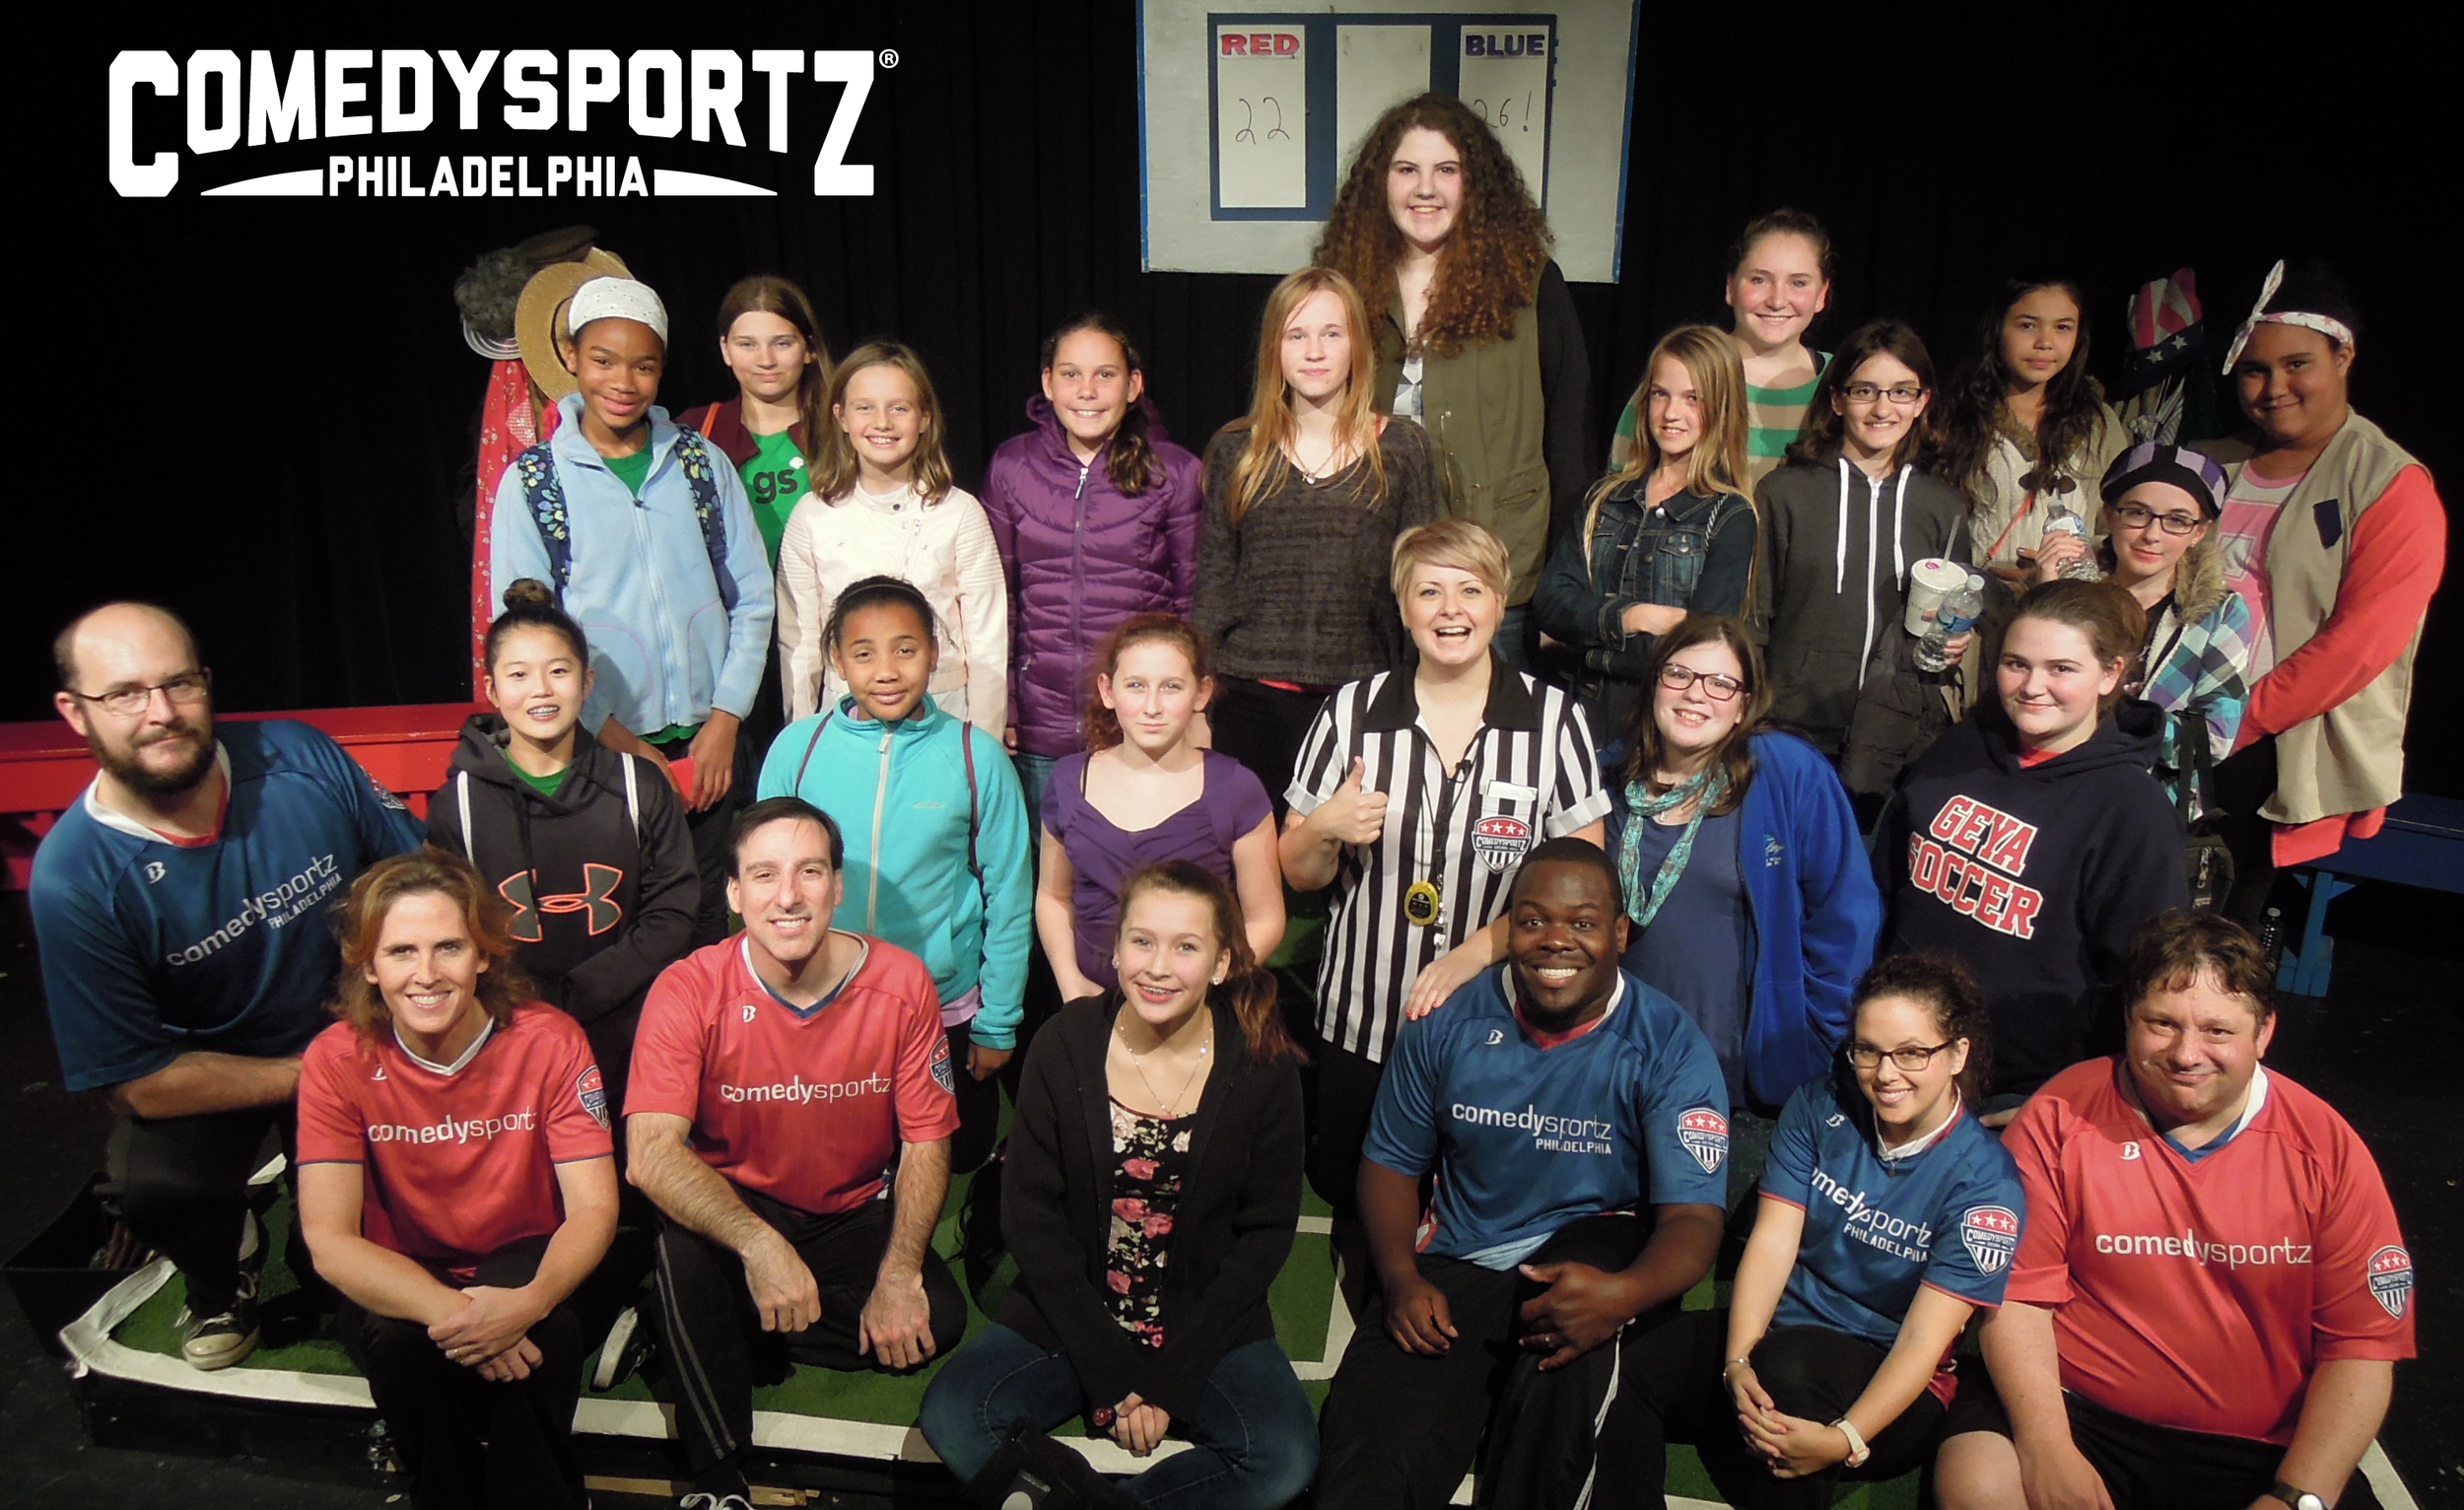 ComedySportz Players and the Girl Scouts